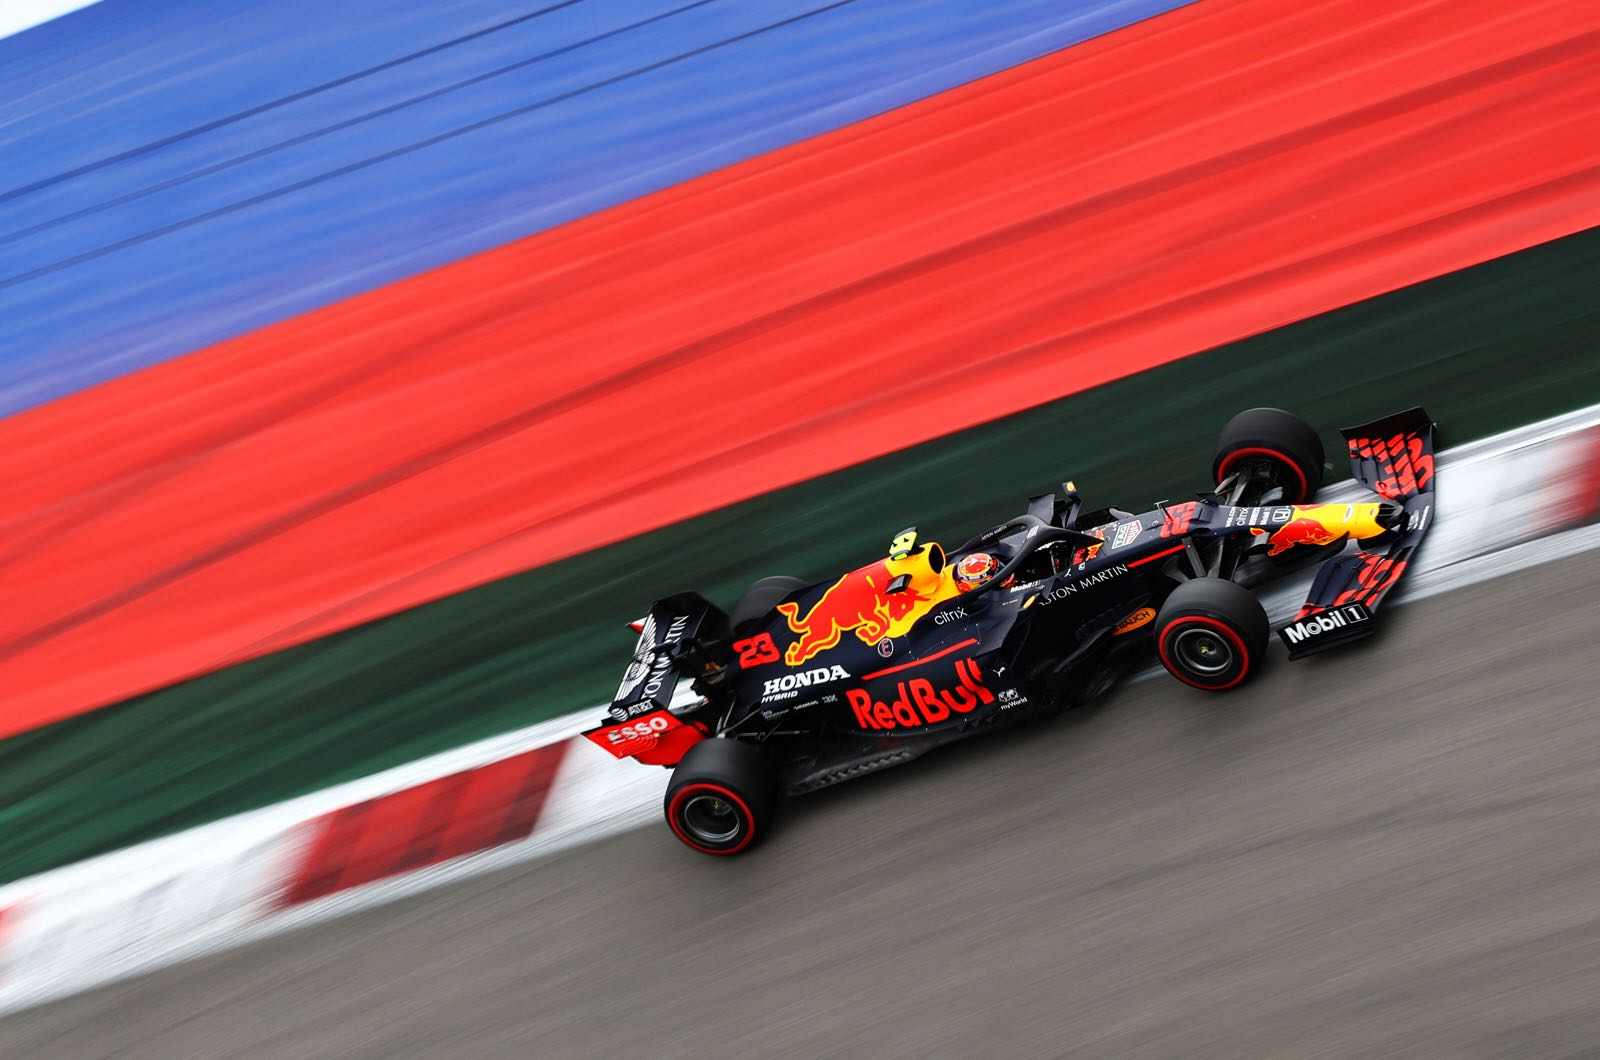 Red Bull could quit F1 over engine situation